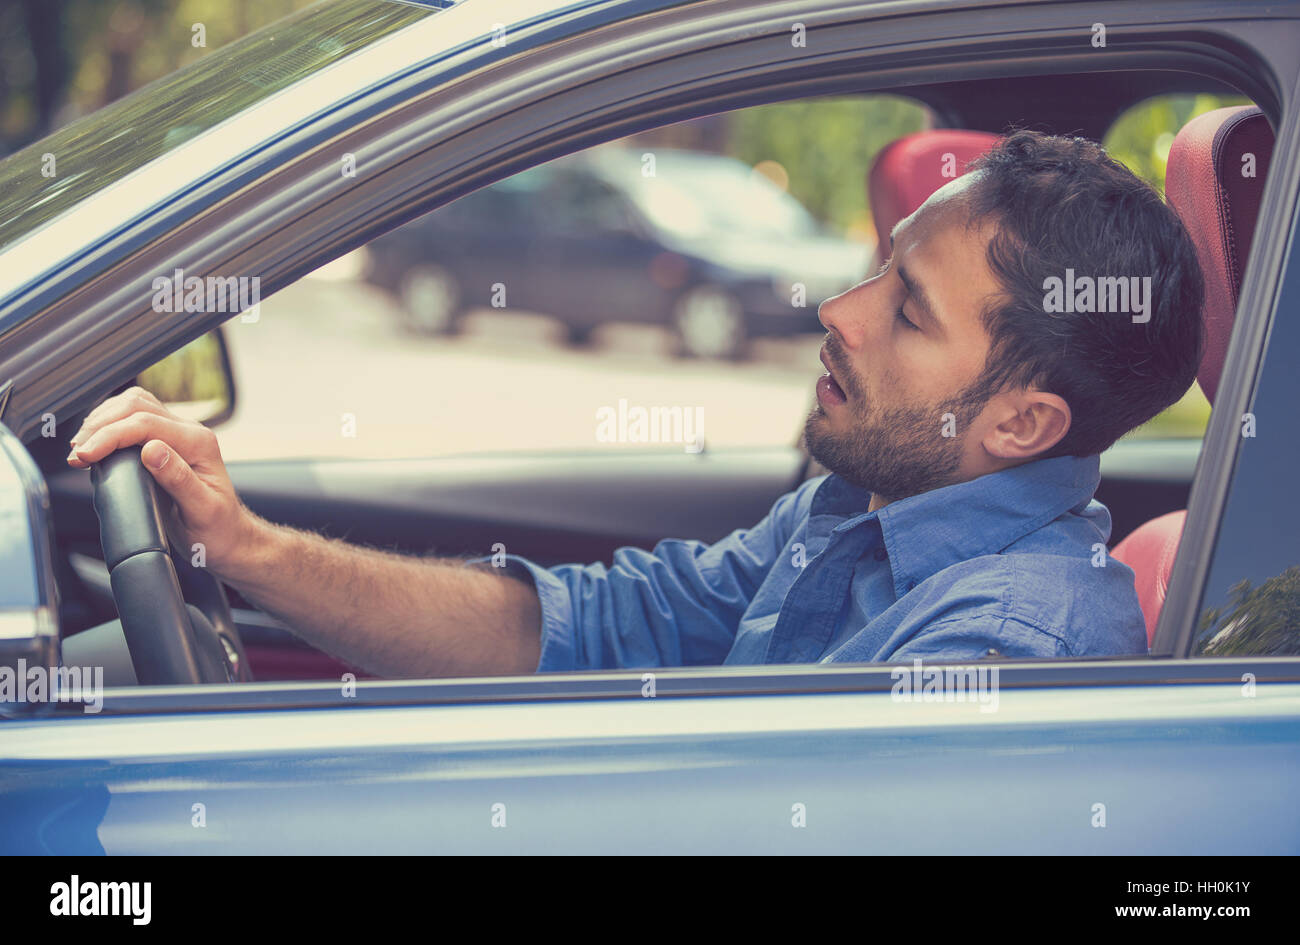 Side view sleepy tired fatigued exhausted man driving car in traffic after long hours. Transportation safety sleep - Stock Image